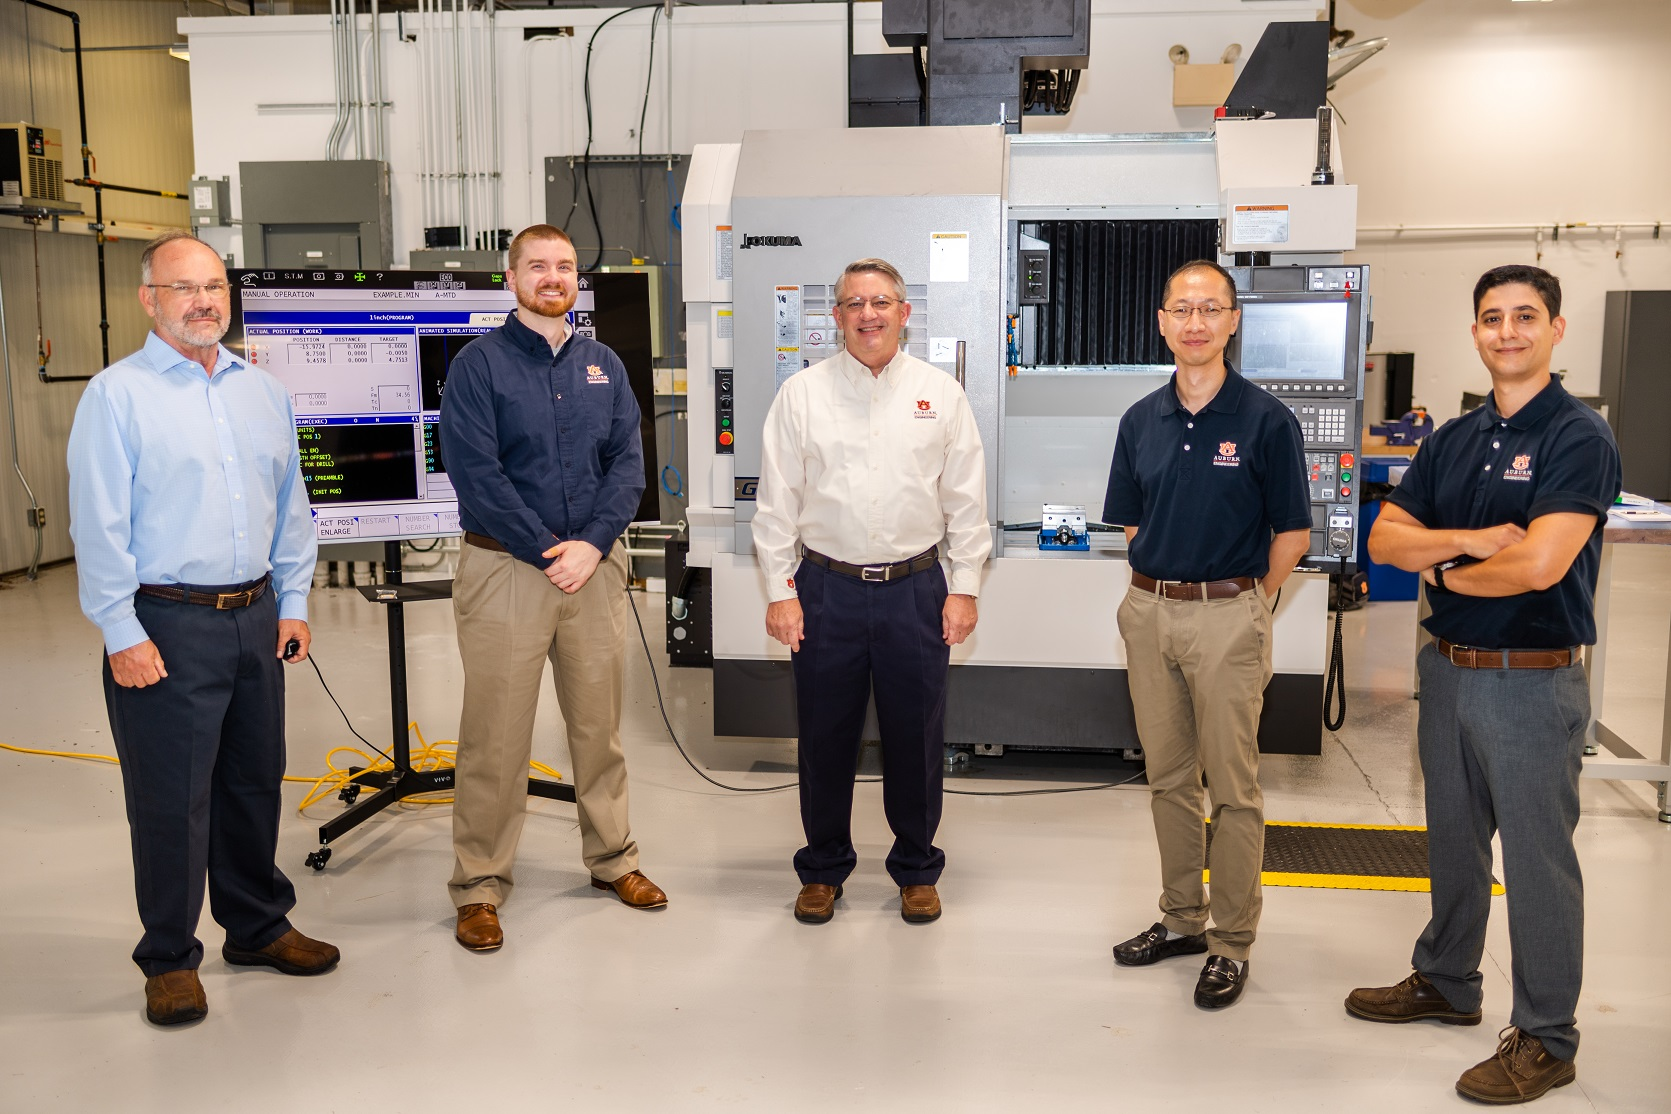 The Interdisciplinary Center for Advanced Manufacturing, or ICAMS, at Auburn University, housed within the Department of InLewis Payton; Greg Purdy; Greg Harris; Peter Liu; and Konstantinos Mykoniatis